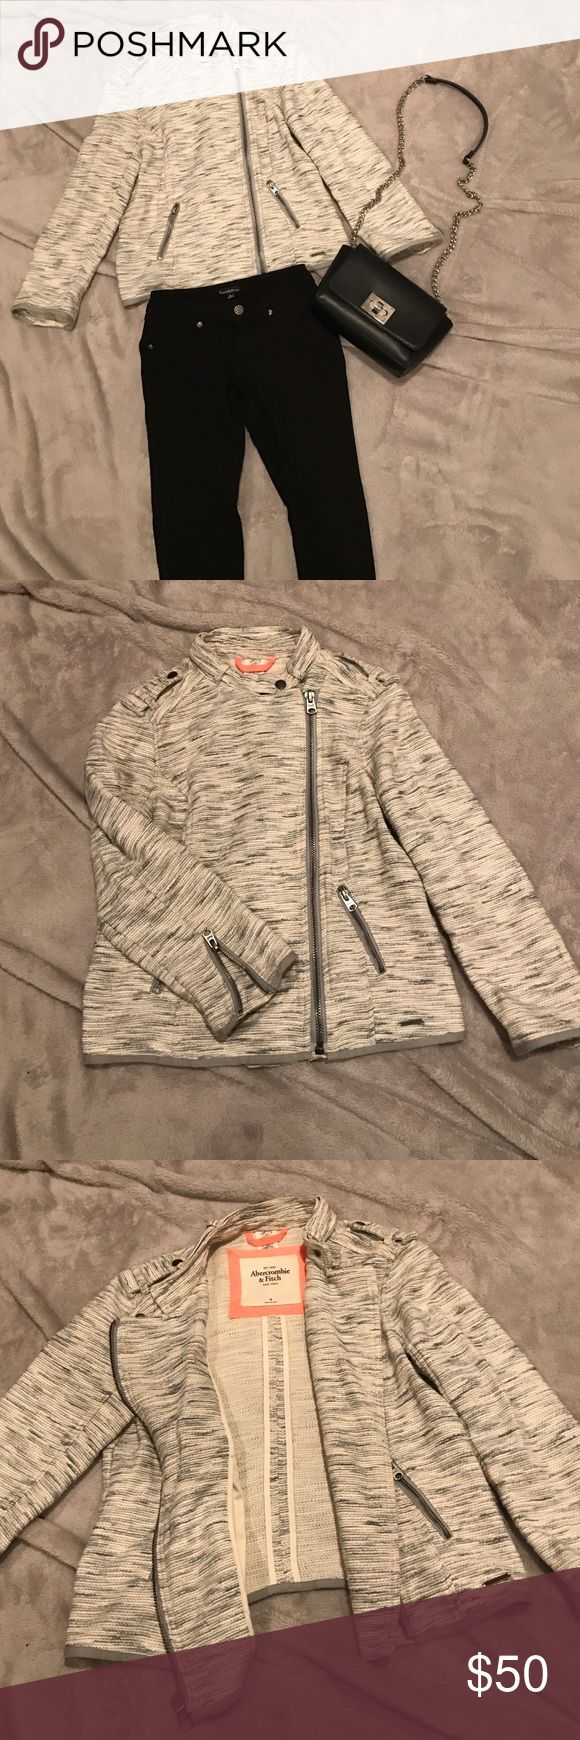 Abercrombie and Fitch jacket In VGUC it is a light heather gray 3/4 sleeve jacket (pants available in a separate listing) Abercrombie & Fitch Jackets & Coats